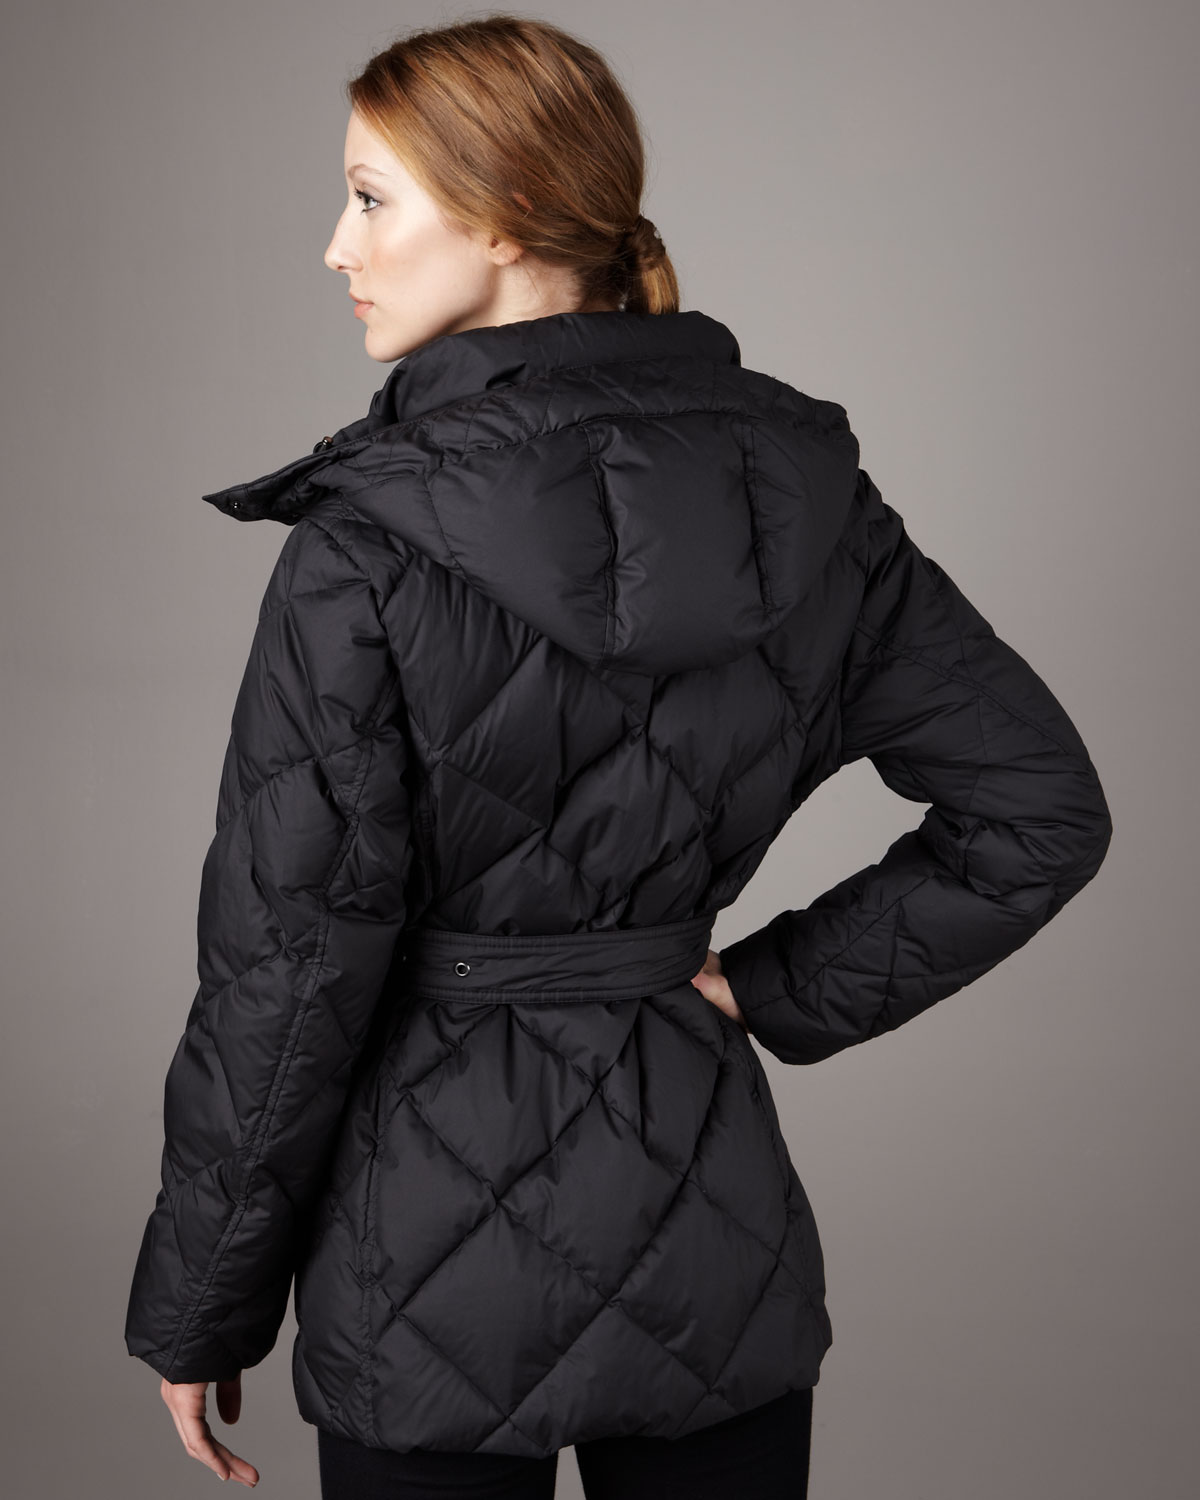 15c5b45b2a6cf Gallery. Previously sold at: Neiman Marcus · Women's Quilted Coats